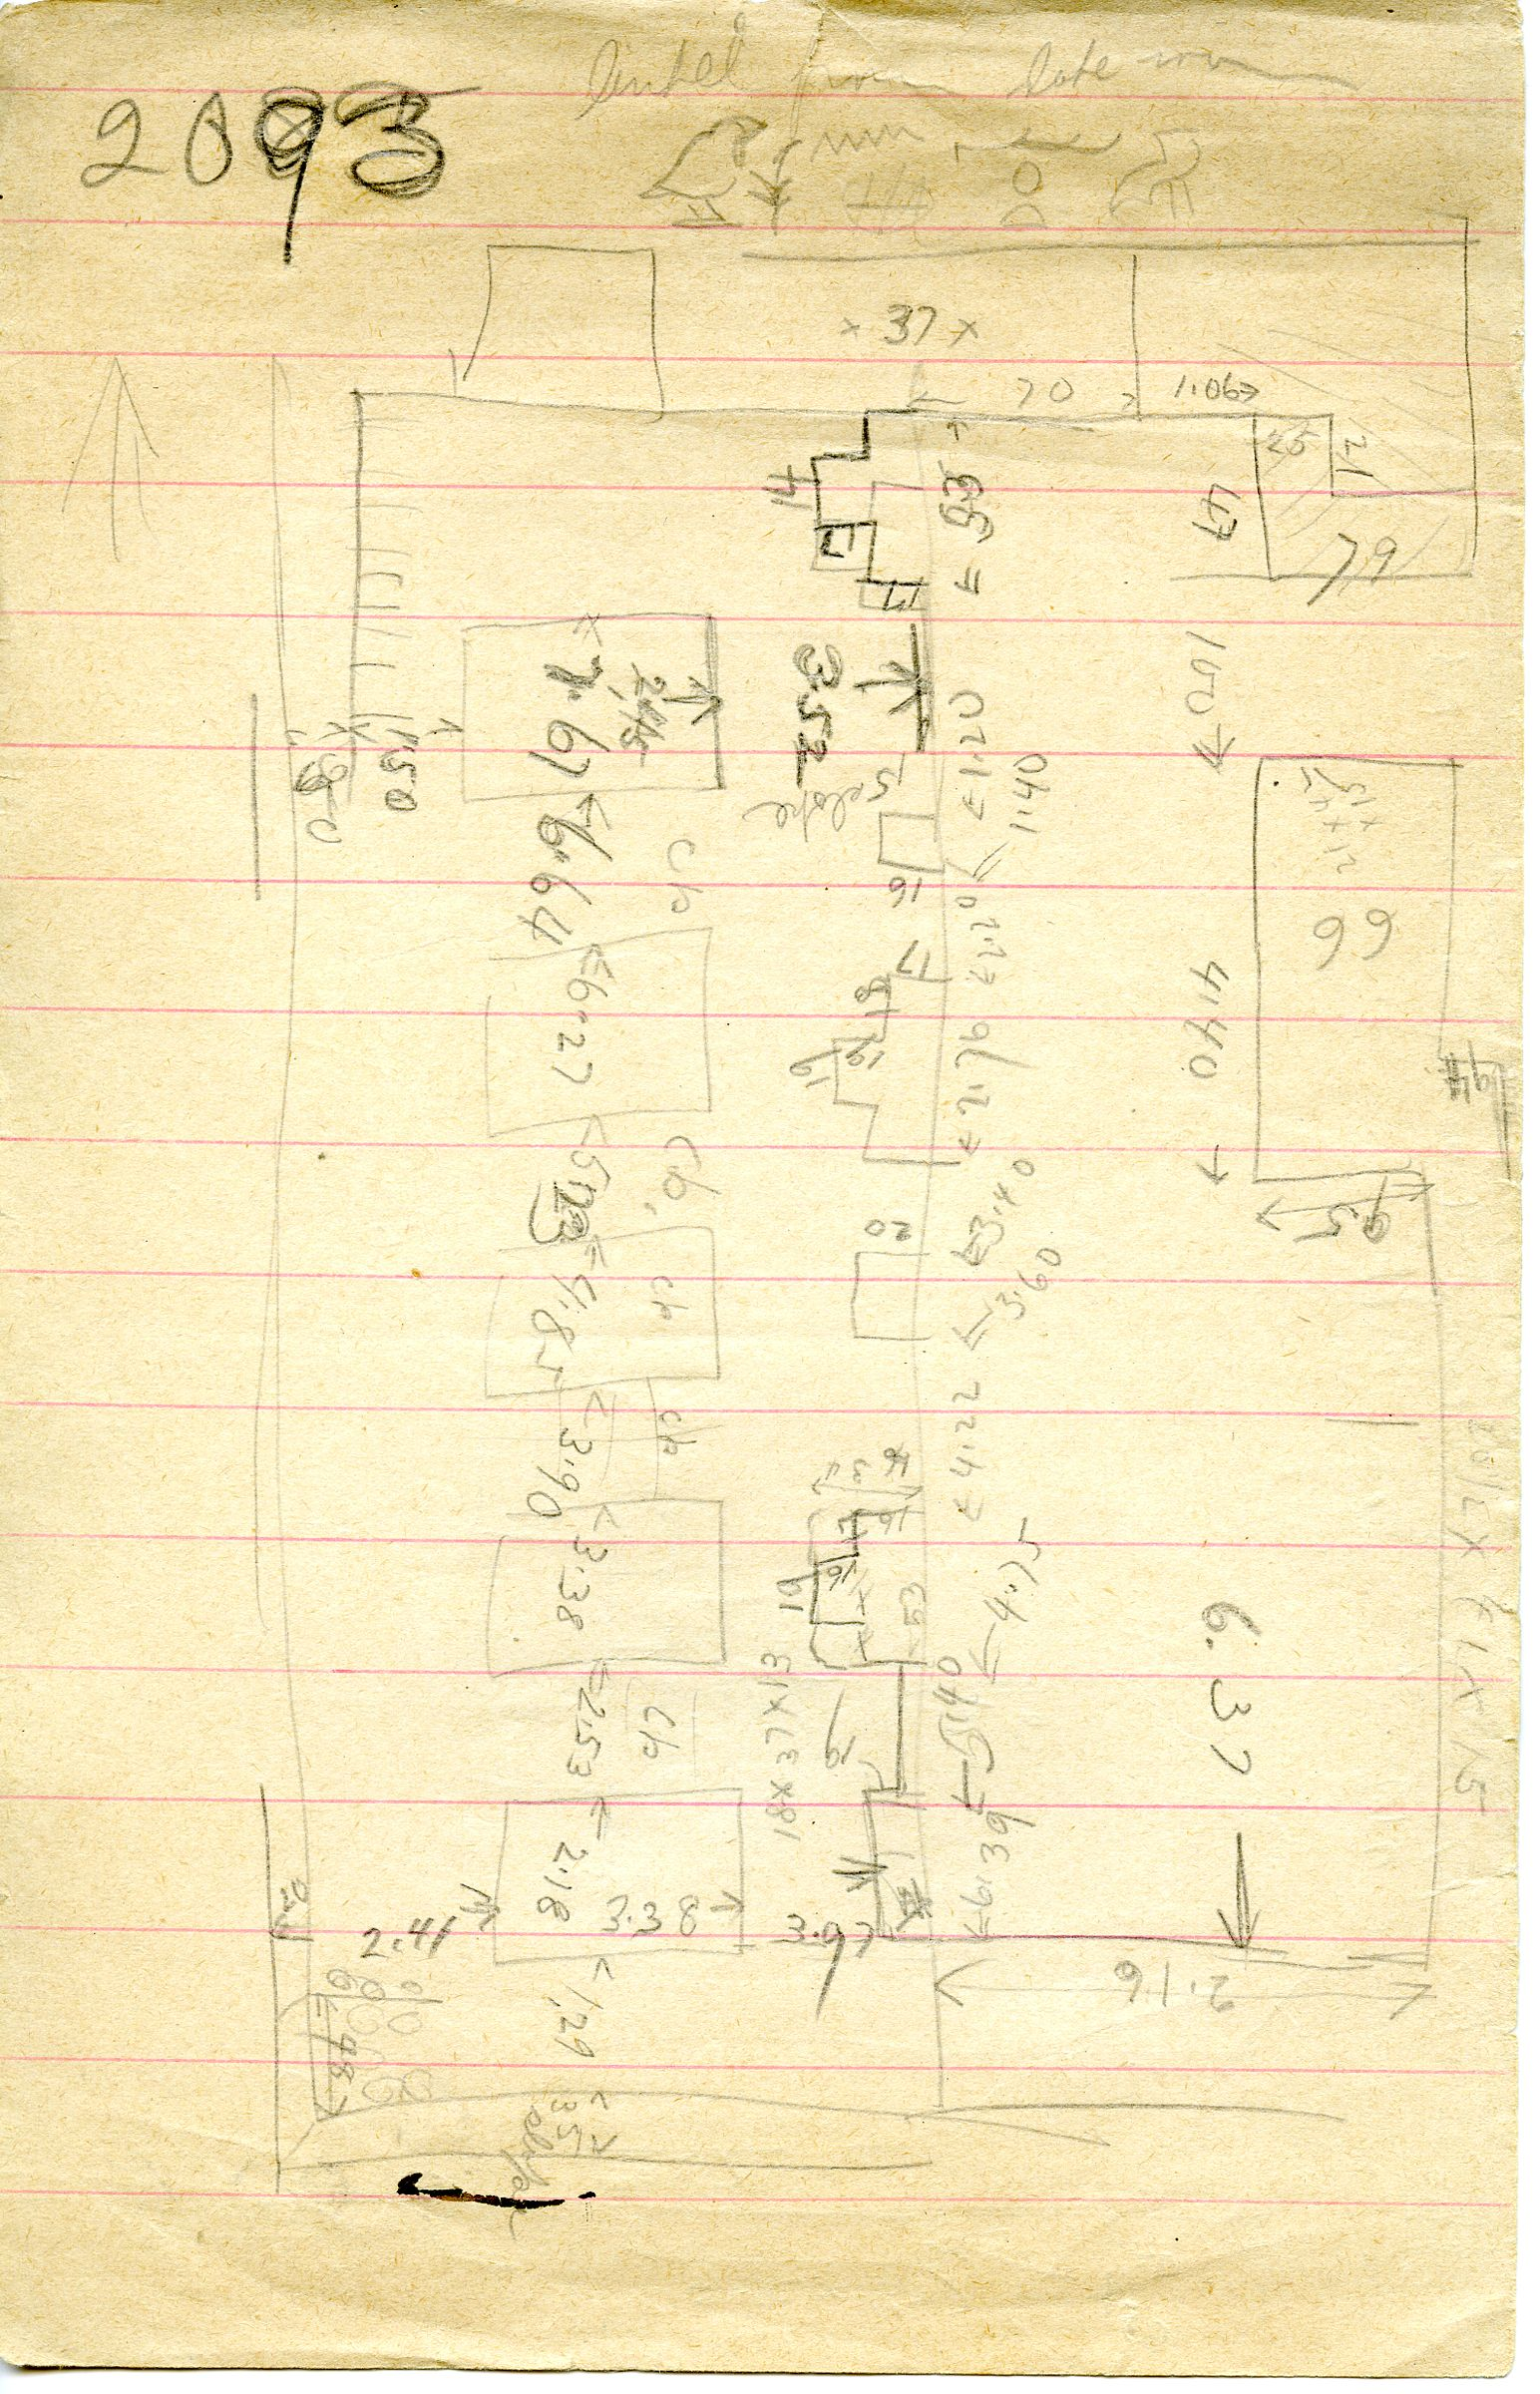 Maps and plans: G 3093, Plan